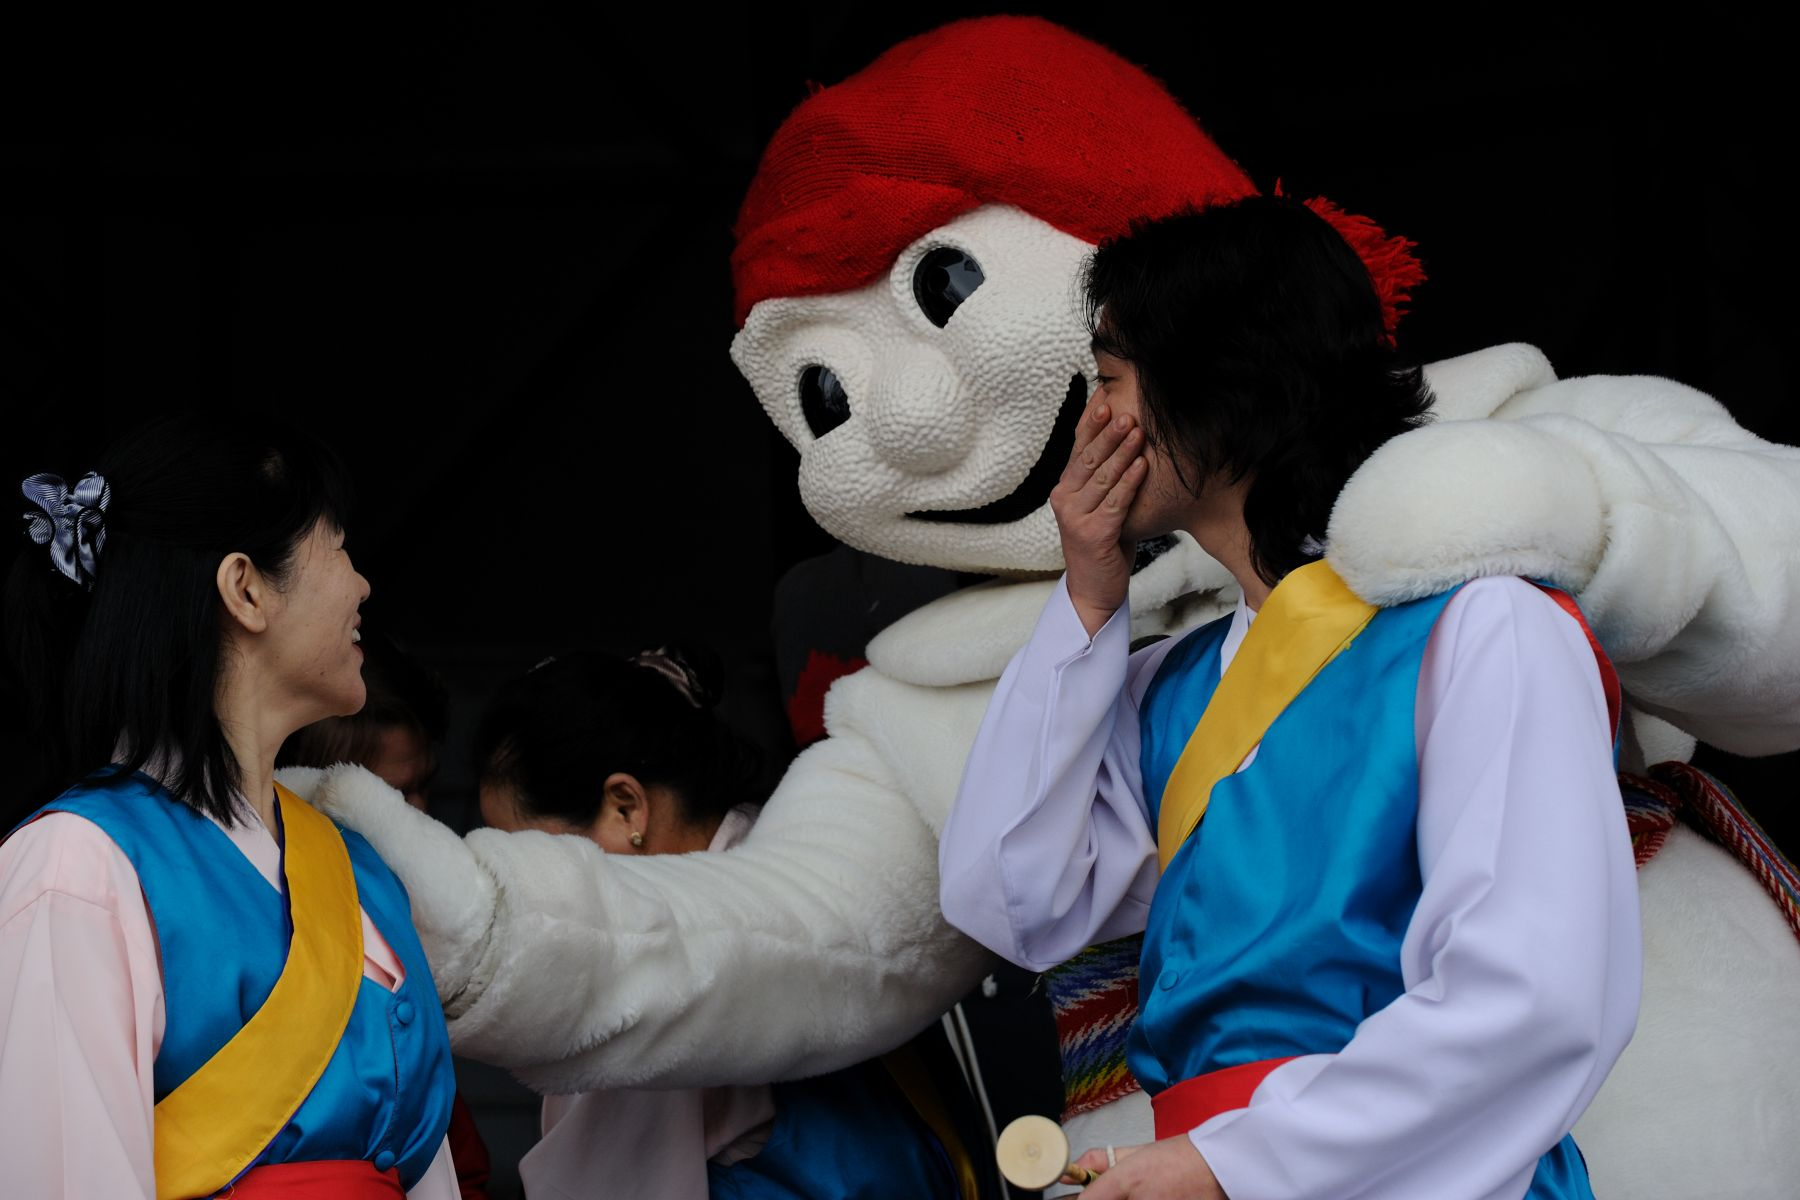 Bonhomme, the official mascot of the Carnival, welcomed Korean dancers that performed on stage.